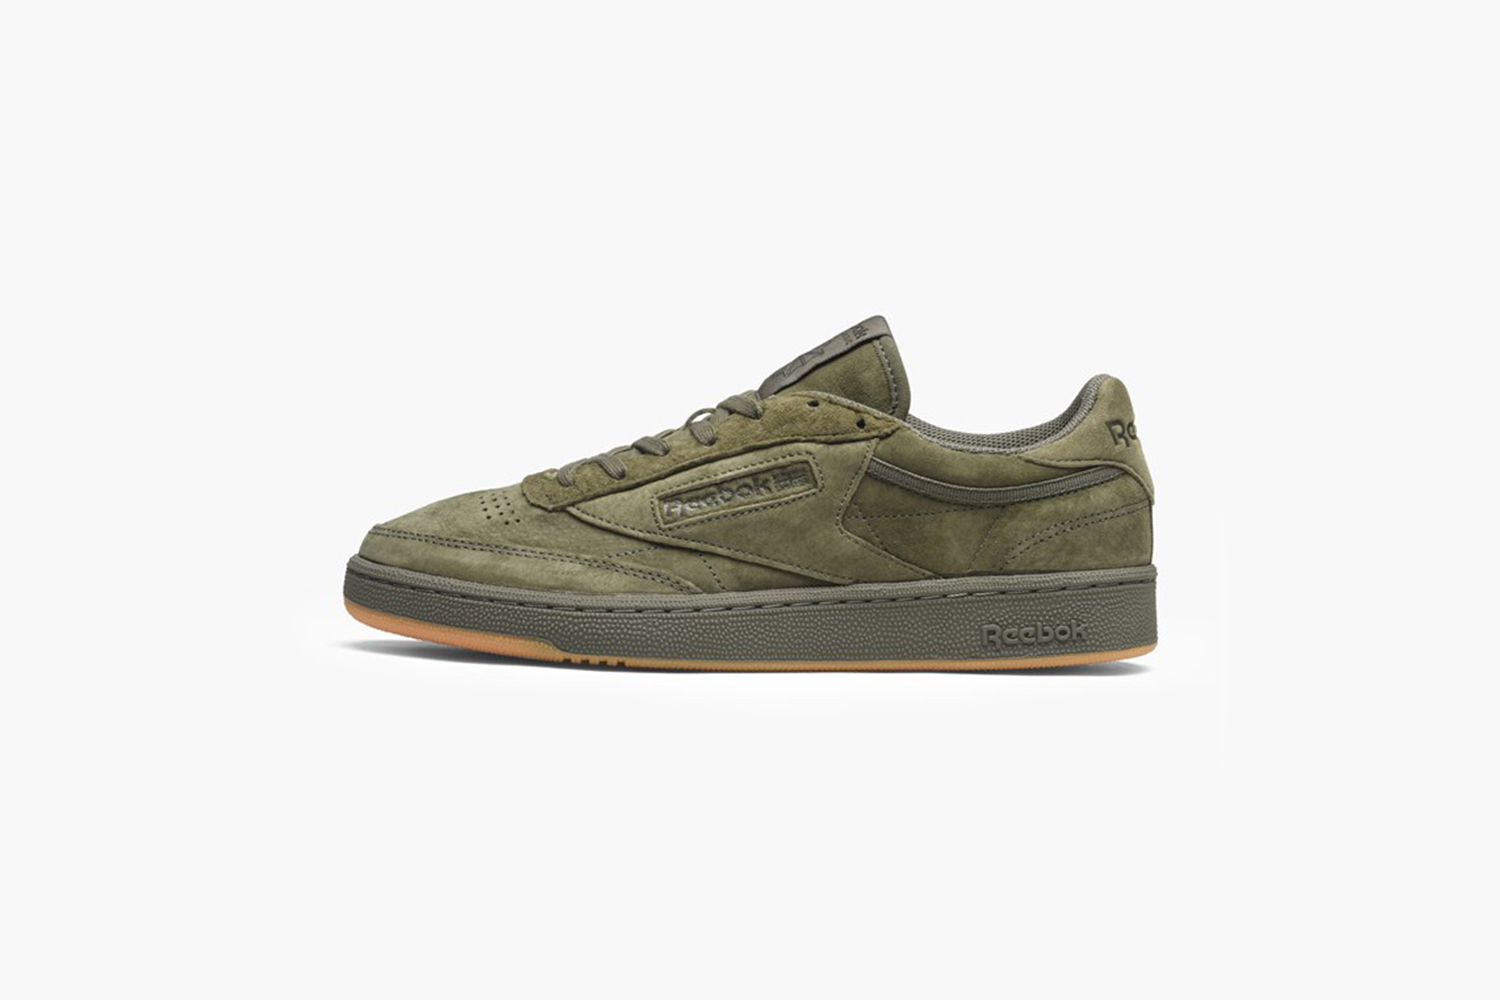 reebok club c 85 tg green bd4759 sapato sneakerstore. Black Bedroom Furniture Sets. Home Design Ideas